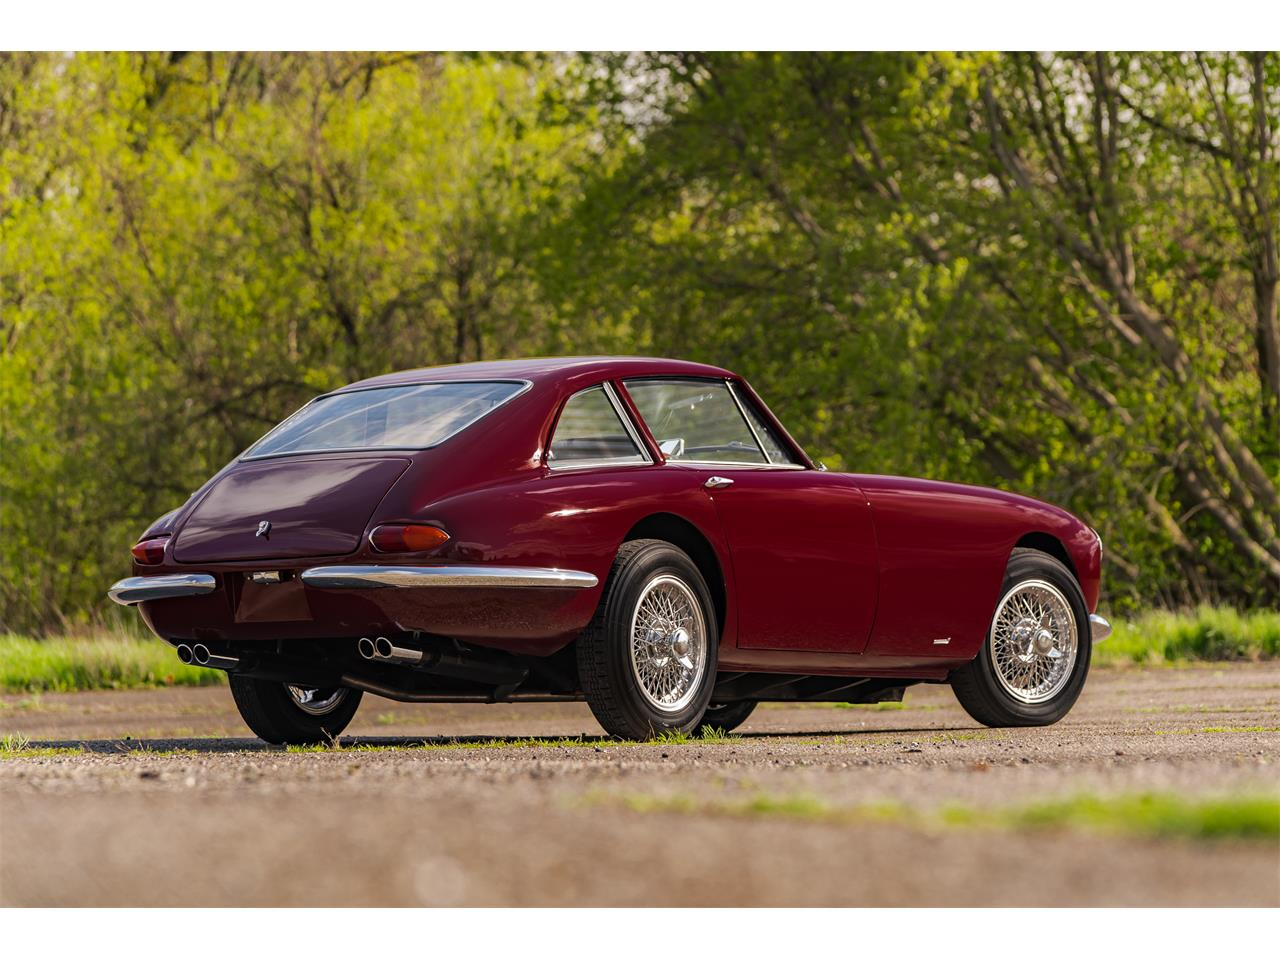 Large Picture of 1963 Apollo 3500GT - $175,000.00 - Q5FX